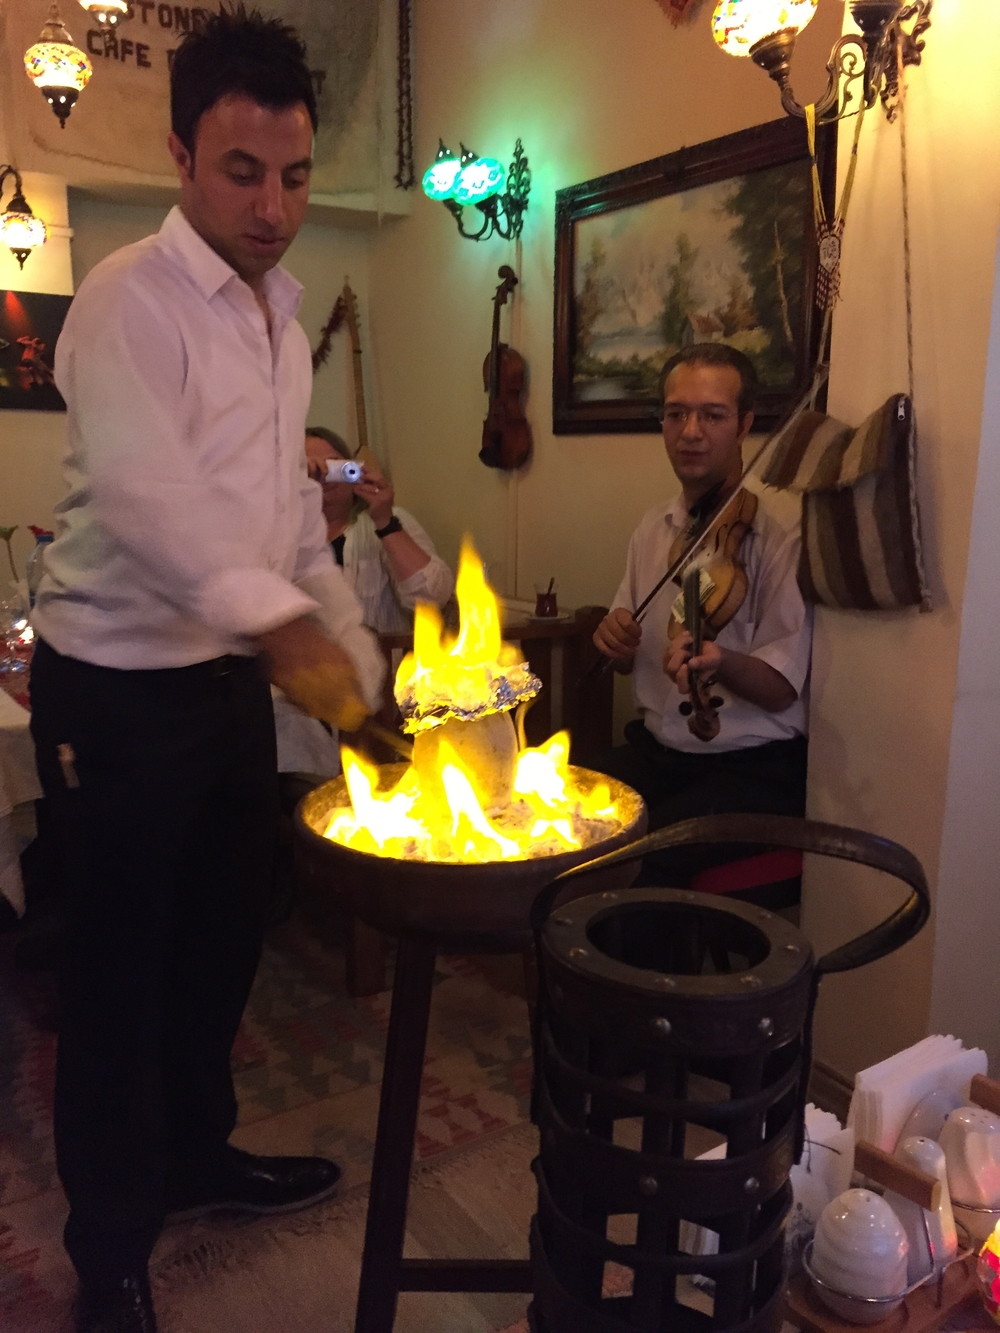 We had dinner at a great Kurdish restaurant.  They cooked the food in a clay pot and broke the pot to serve dinner.